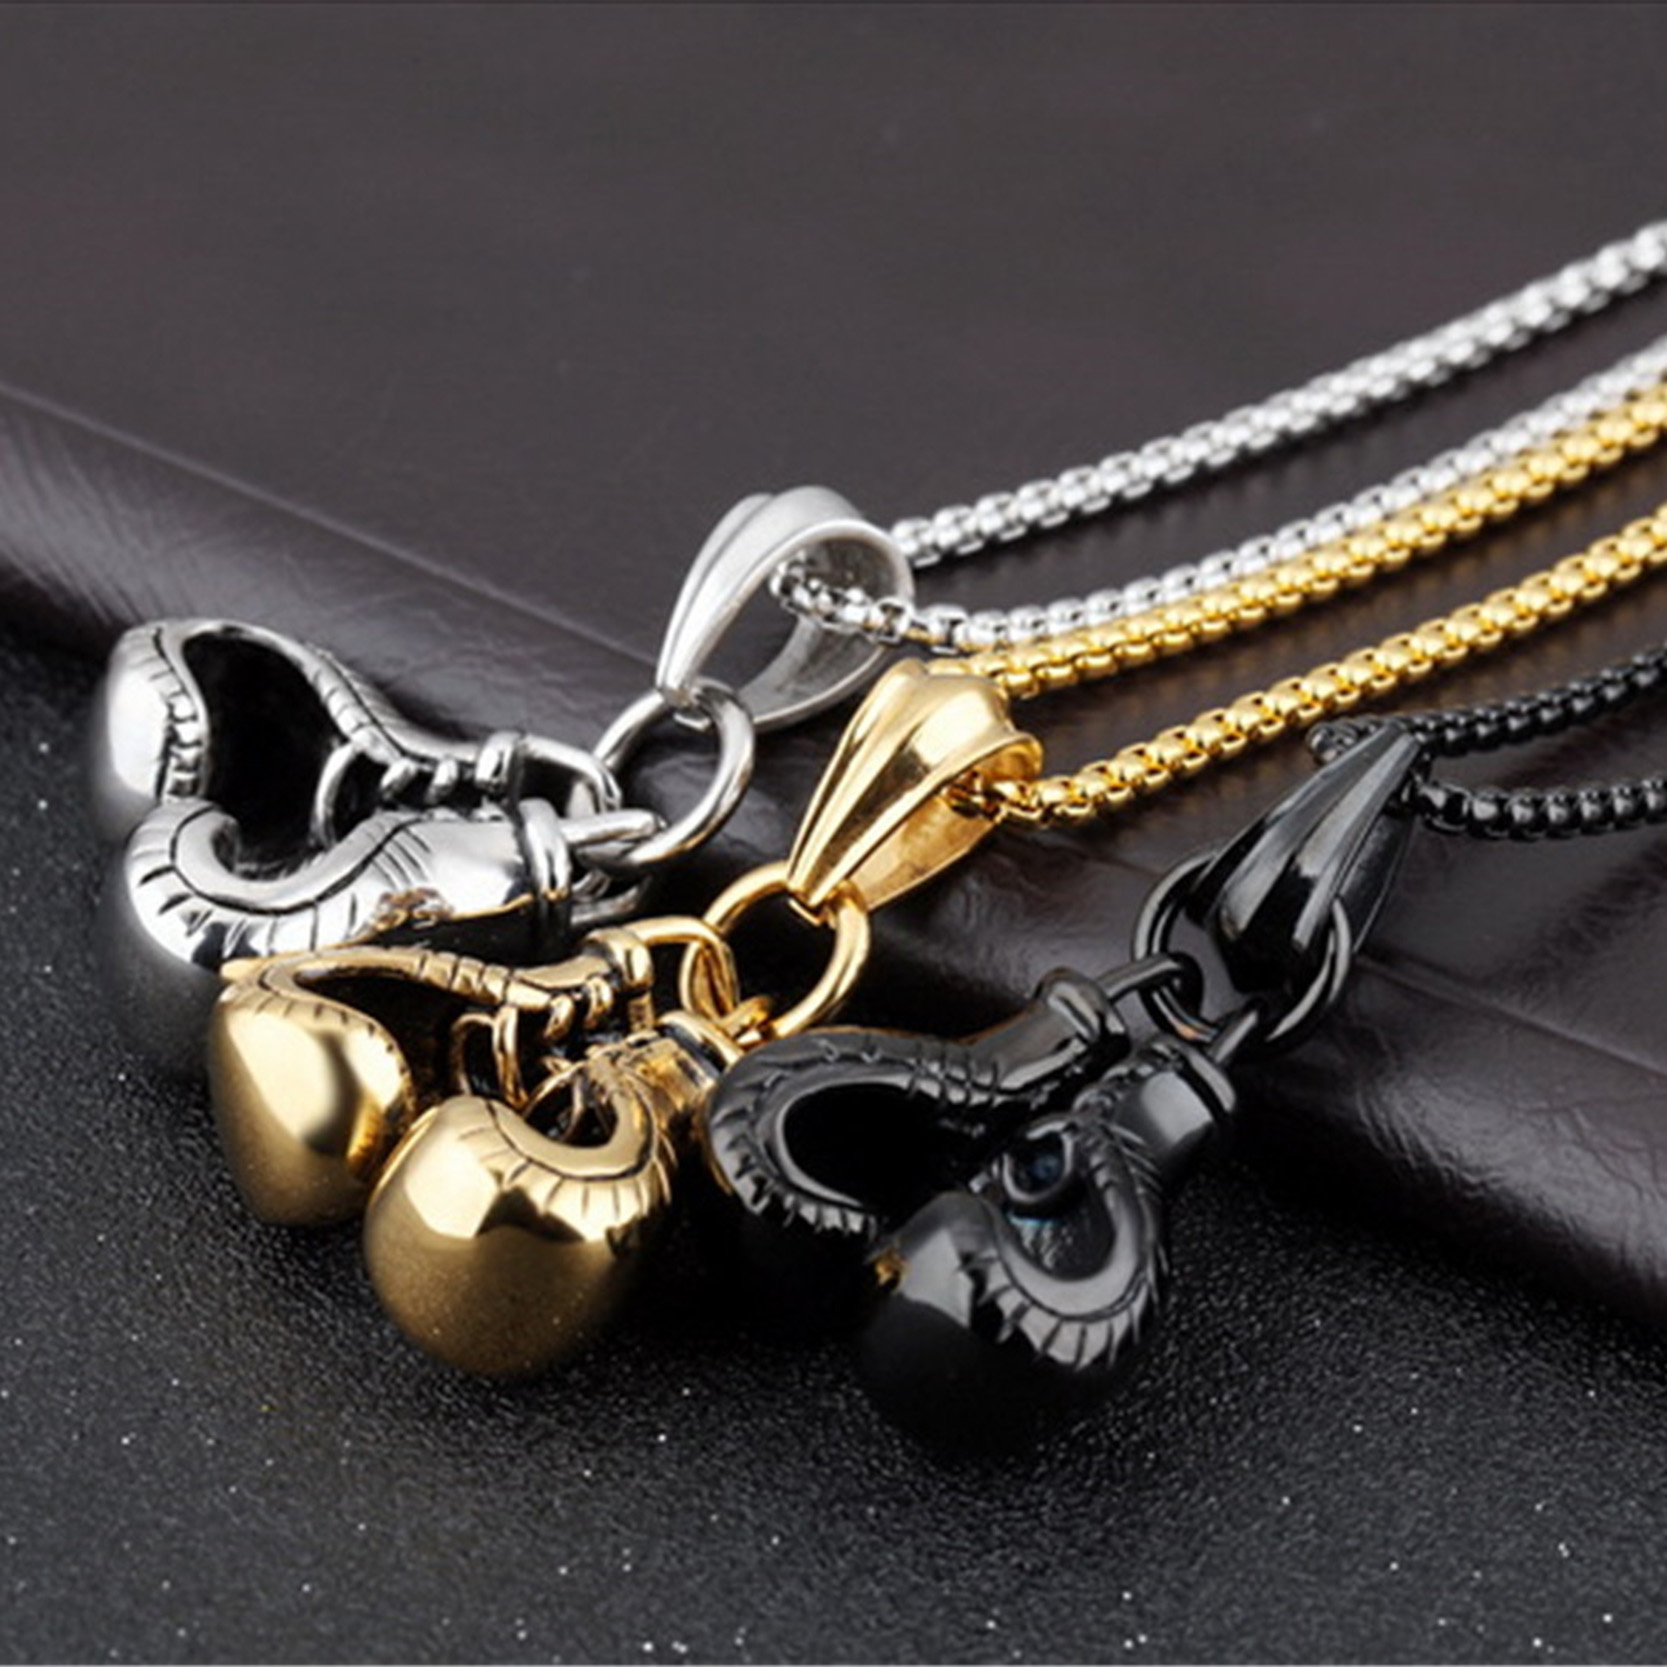 chain thick overstock watches jewelry men steel over free product on shipping rope stainless orders necklace mens s